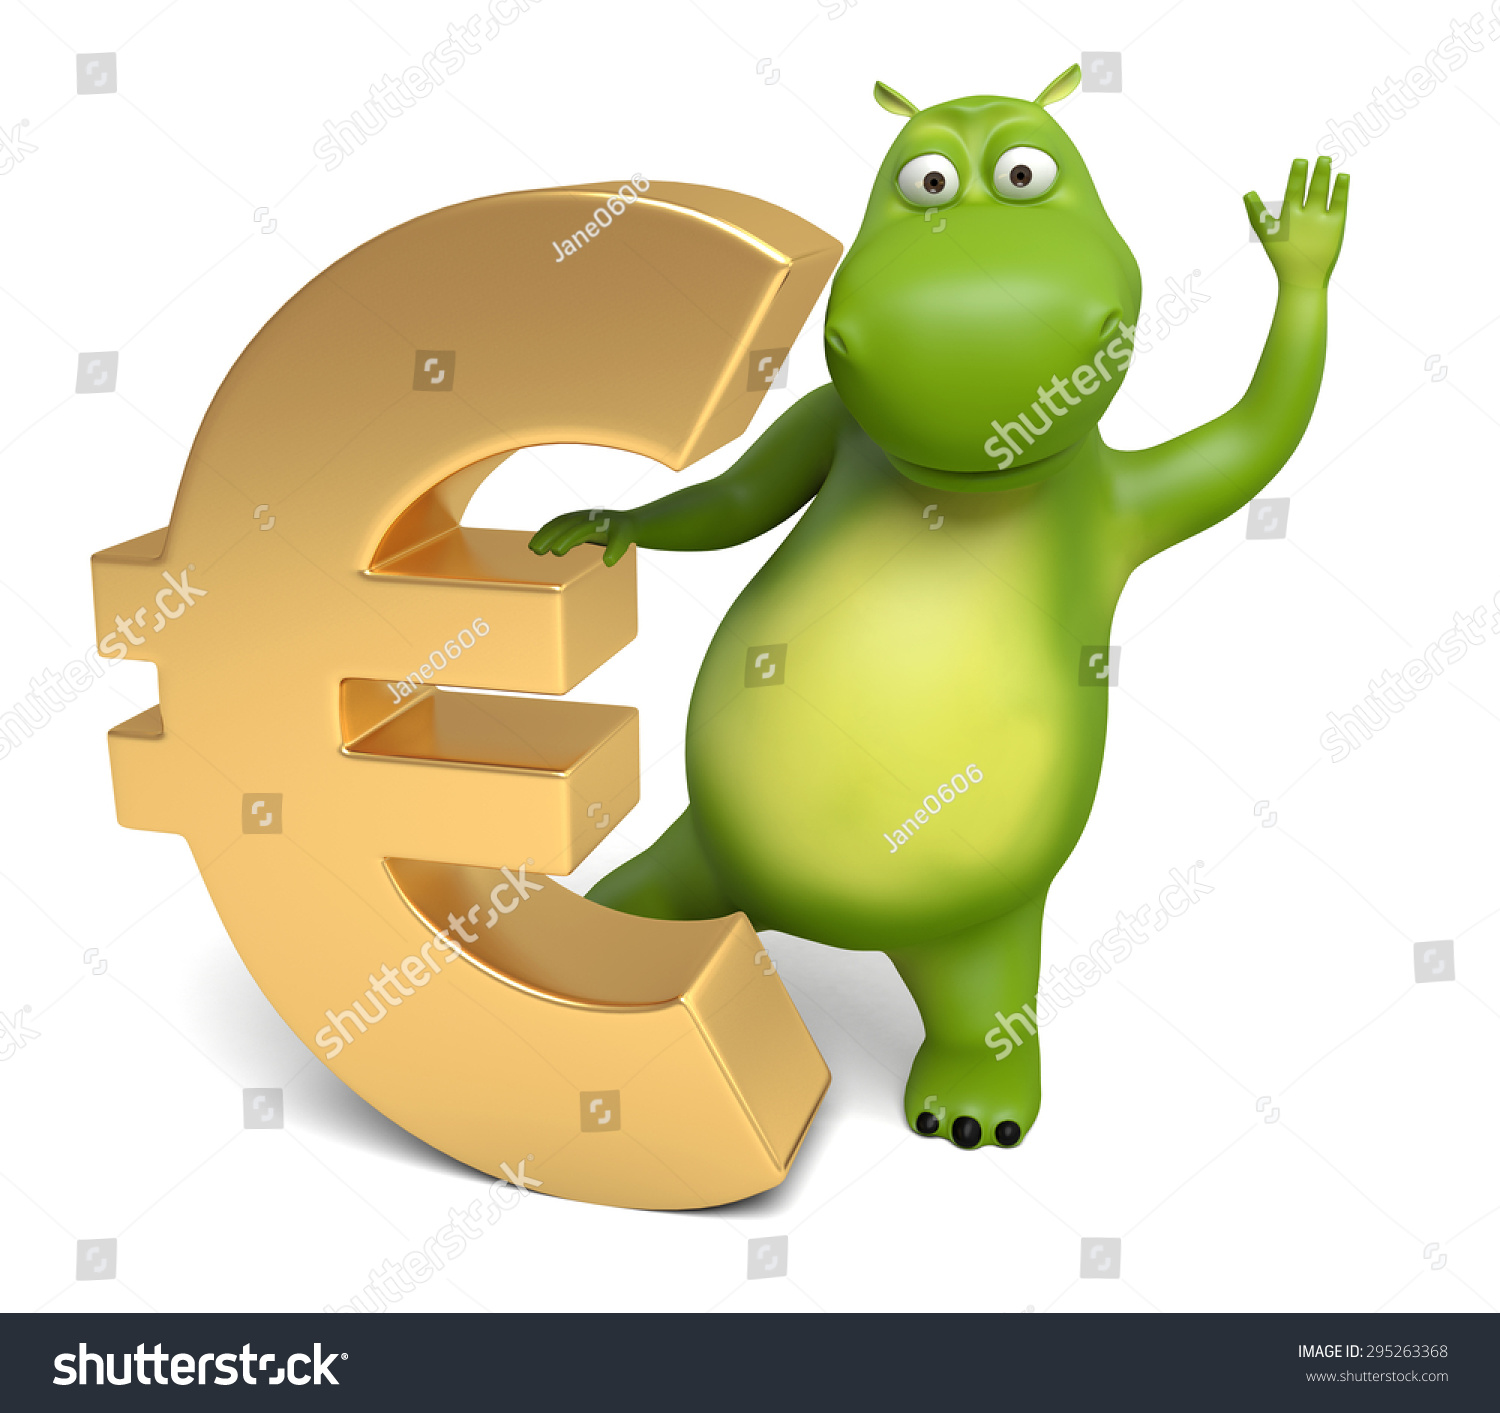 3 D Cartoon Animal Euro Currency Symbol Stock Illustration 295263368